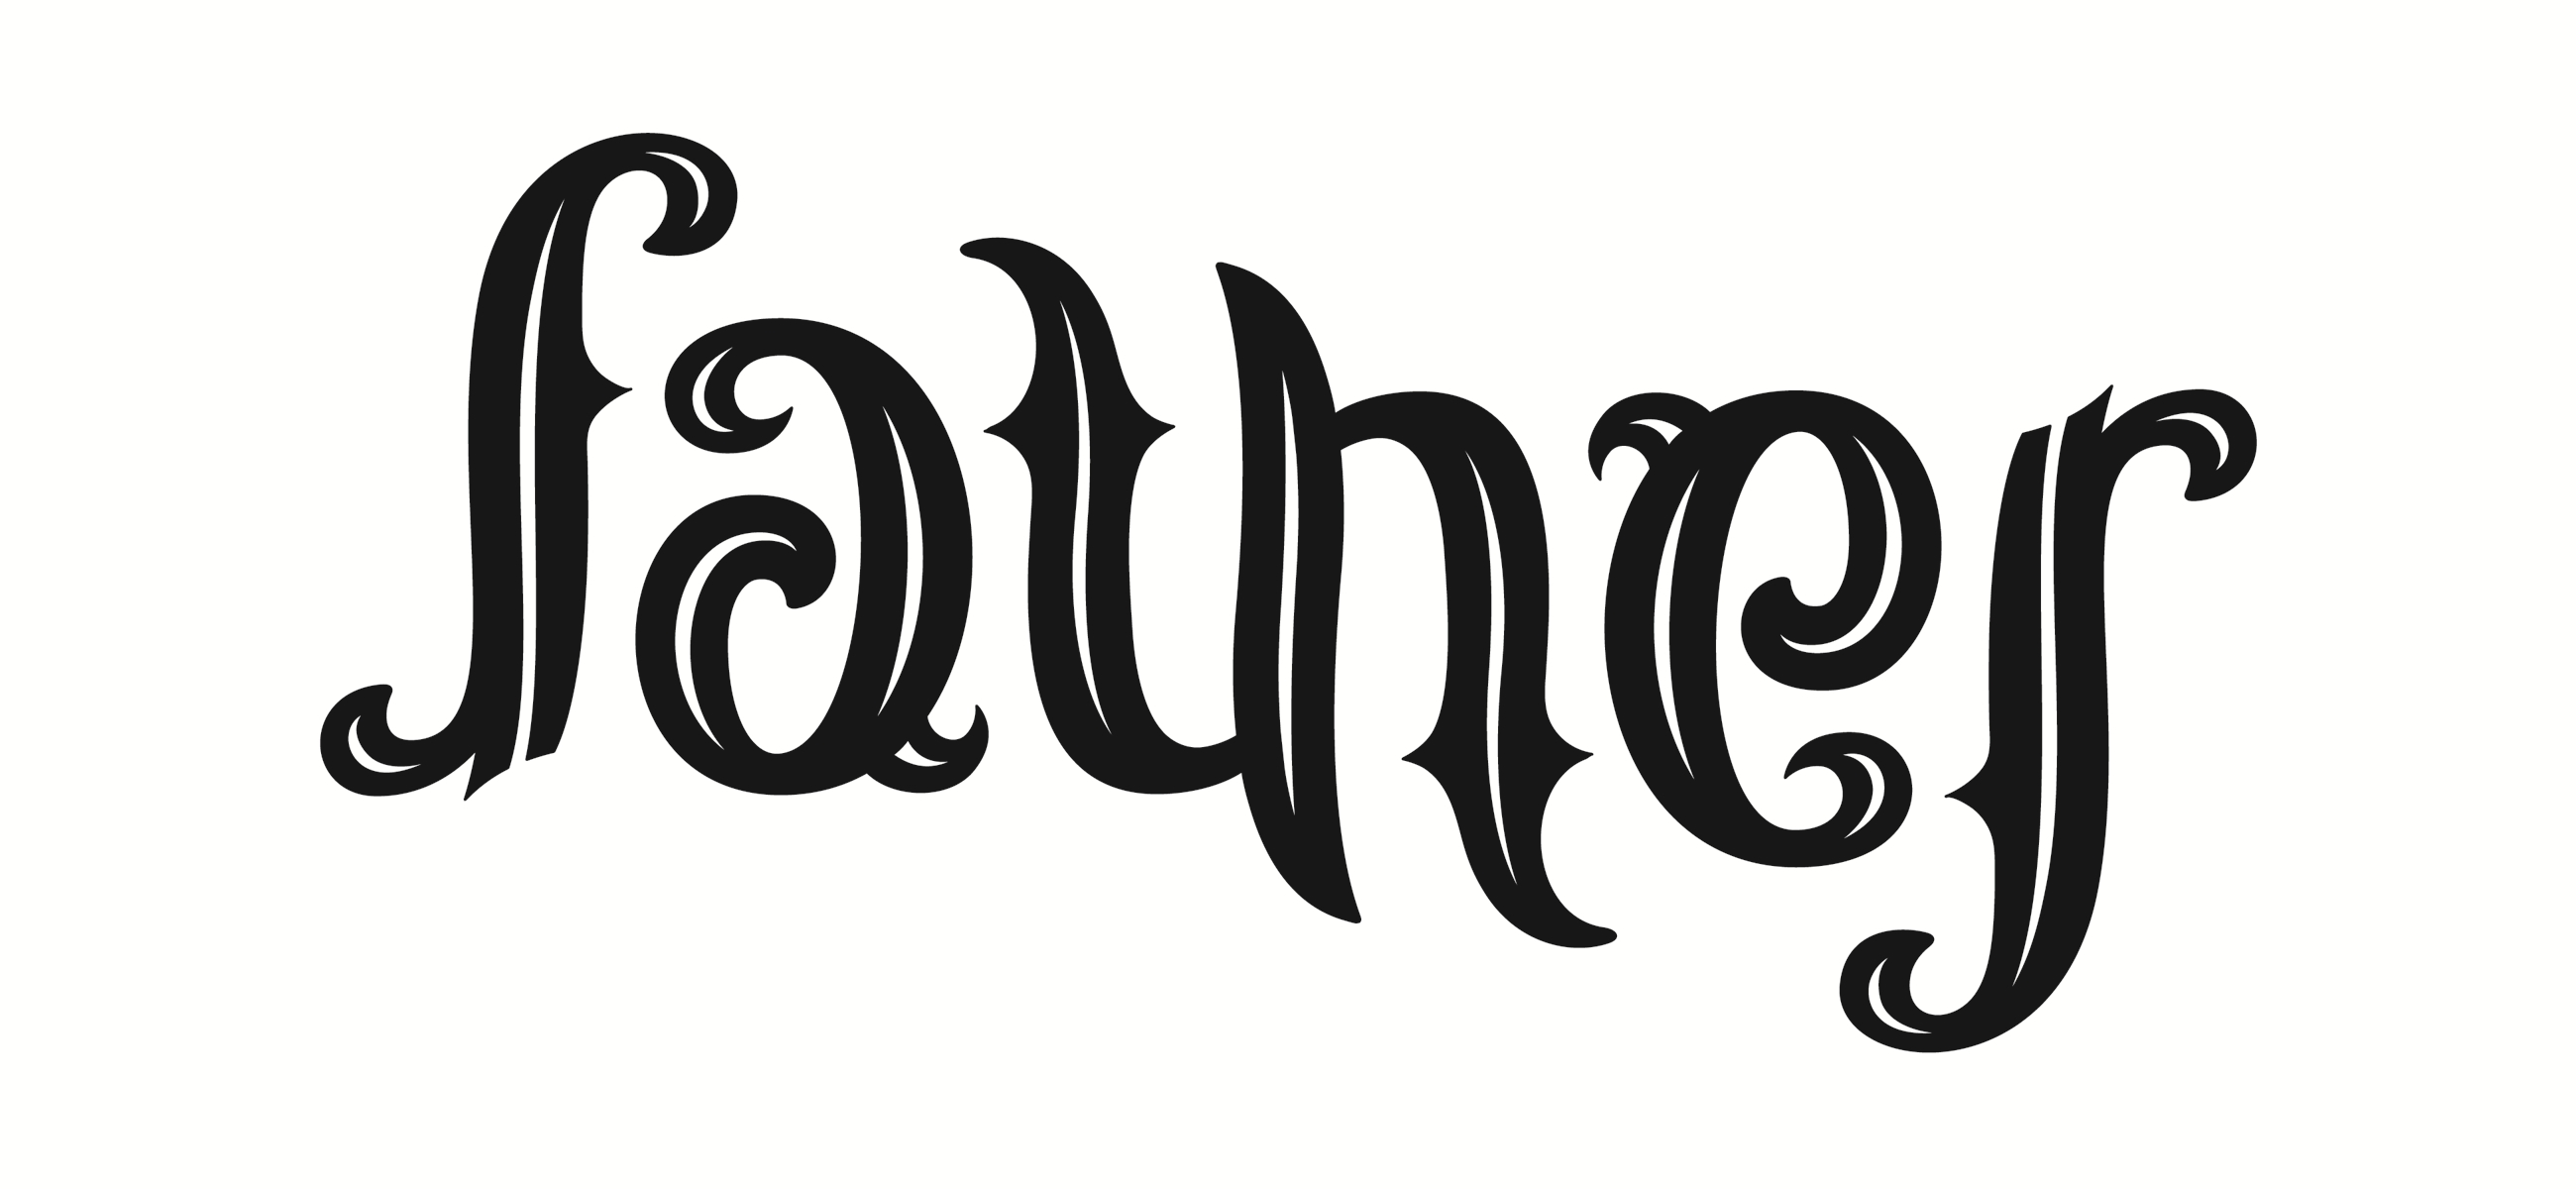 Father Ambigram Tattoo Design Idea